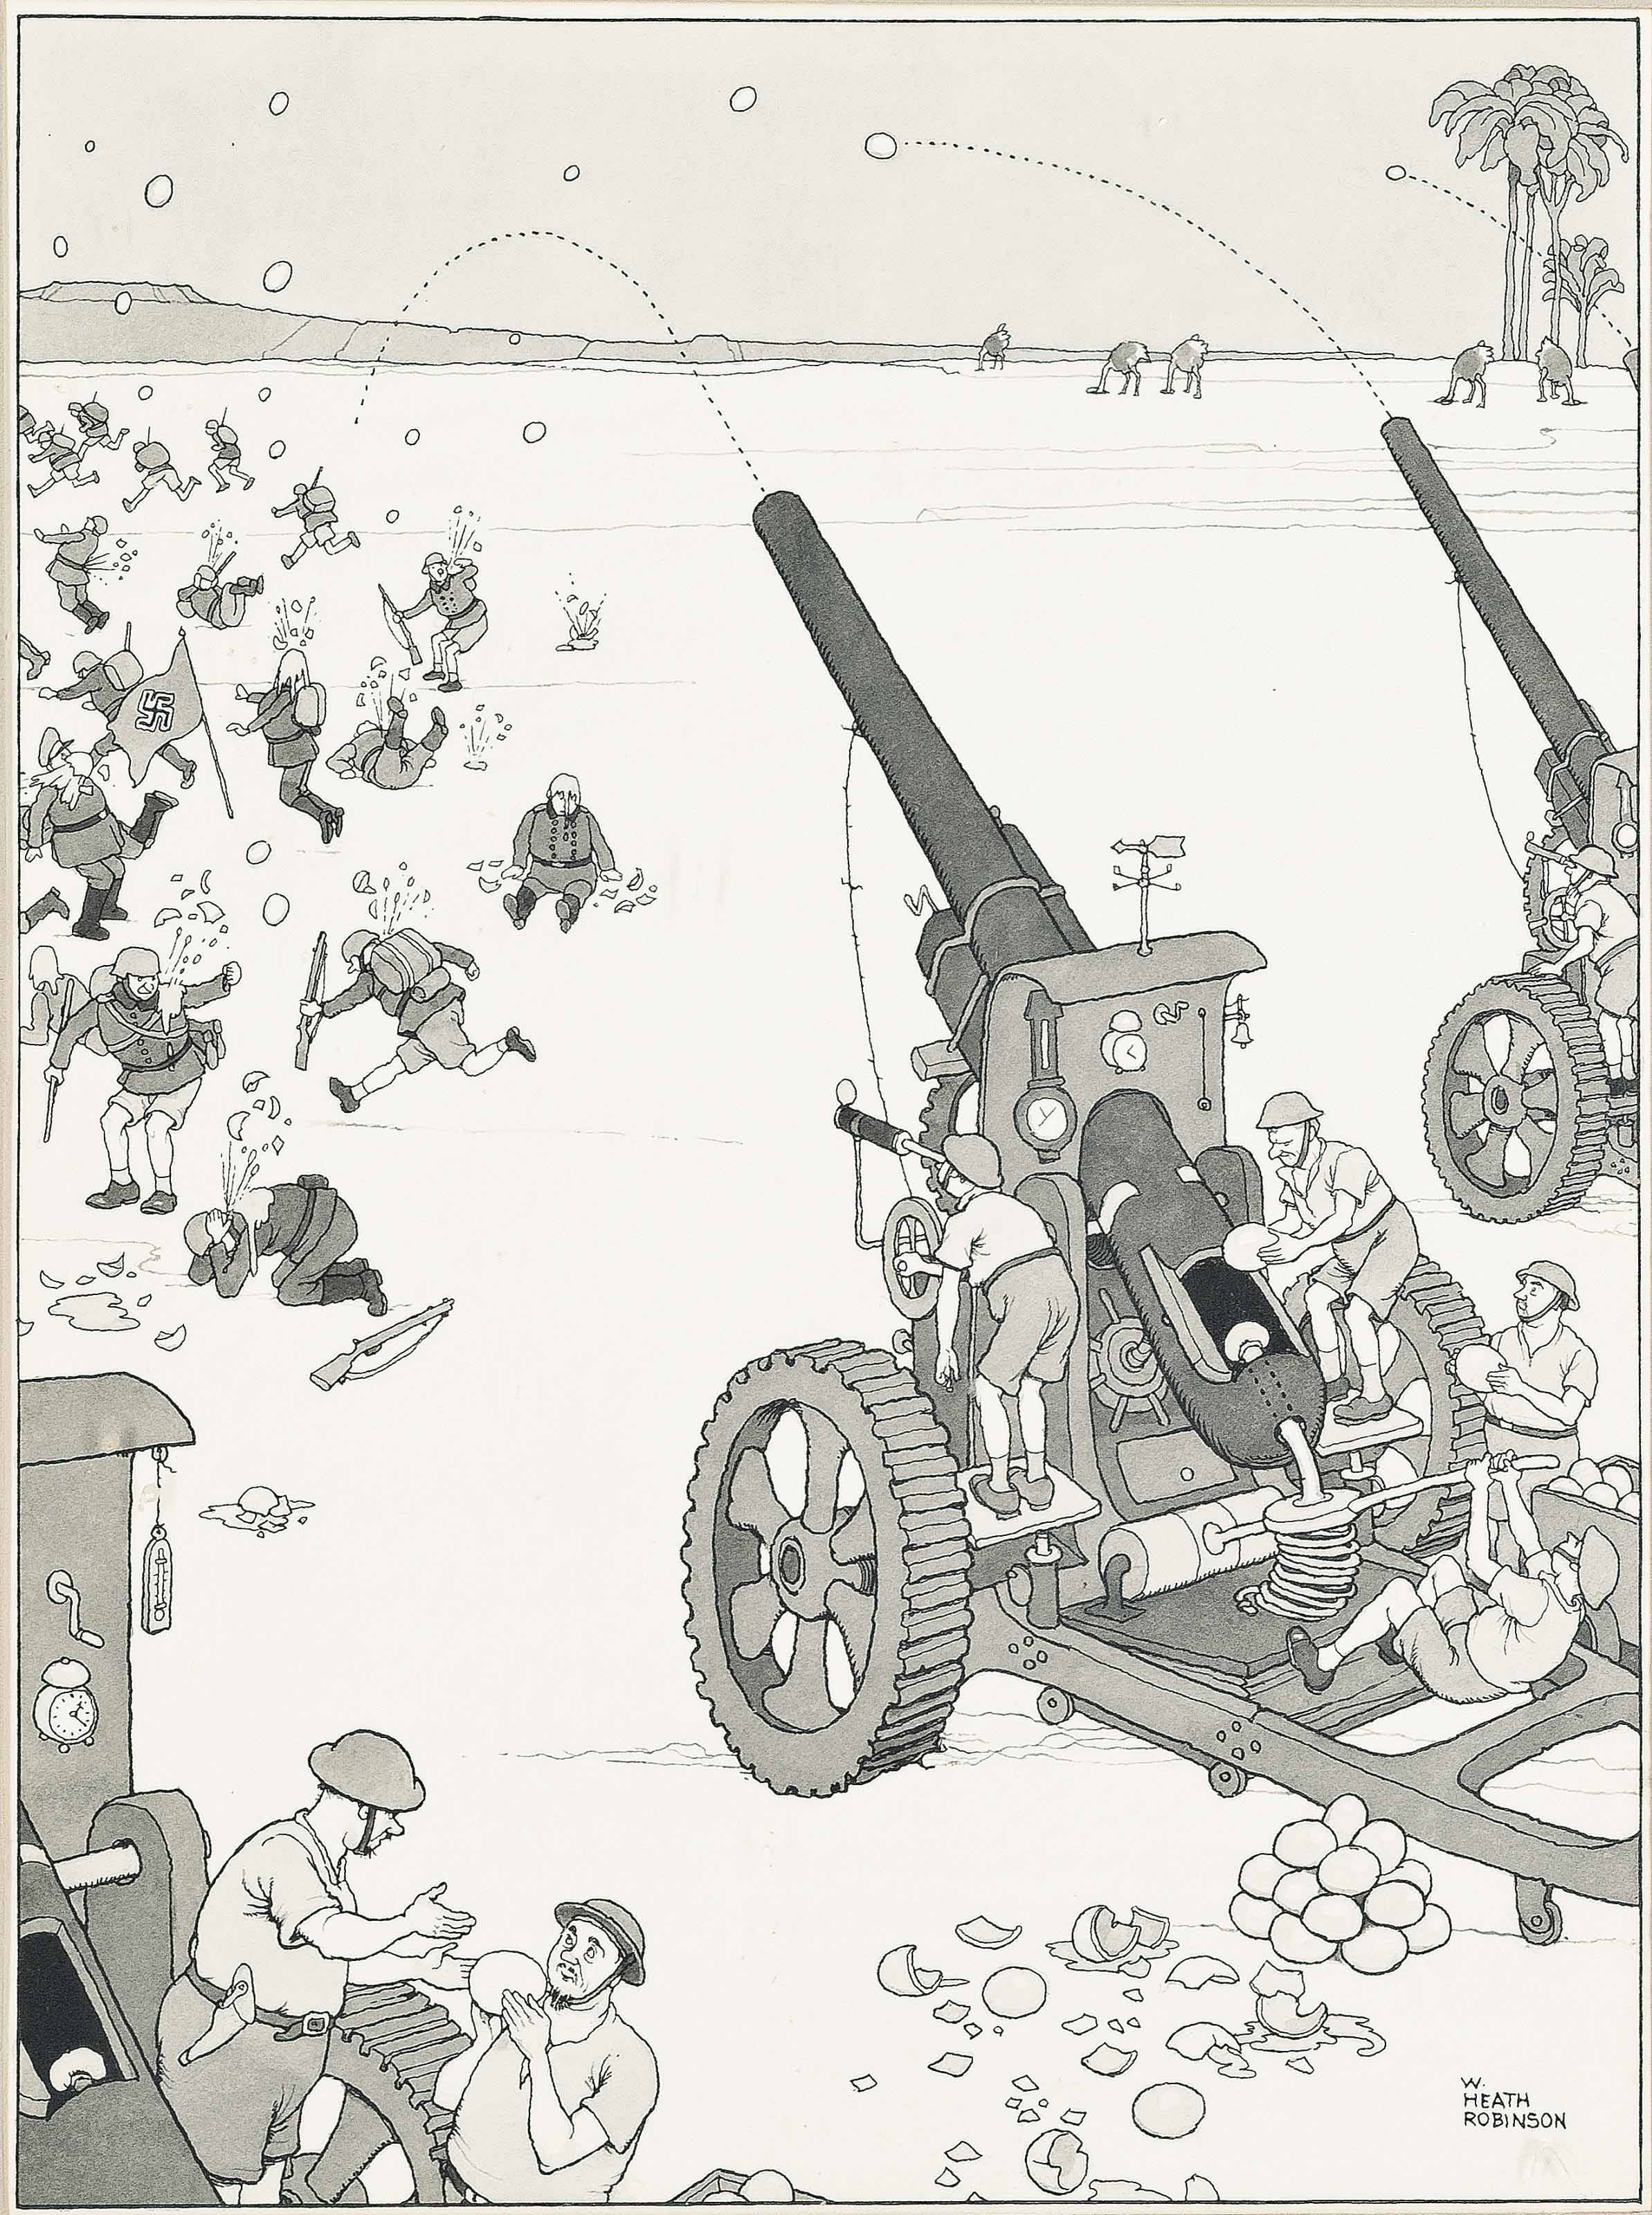 'A battery of our stale ostrich egg throwers for economising ammunition in desert warfare.'